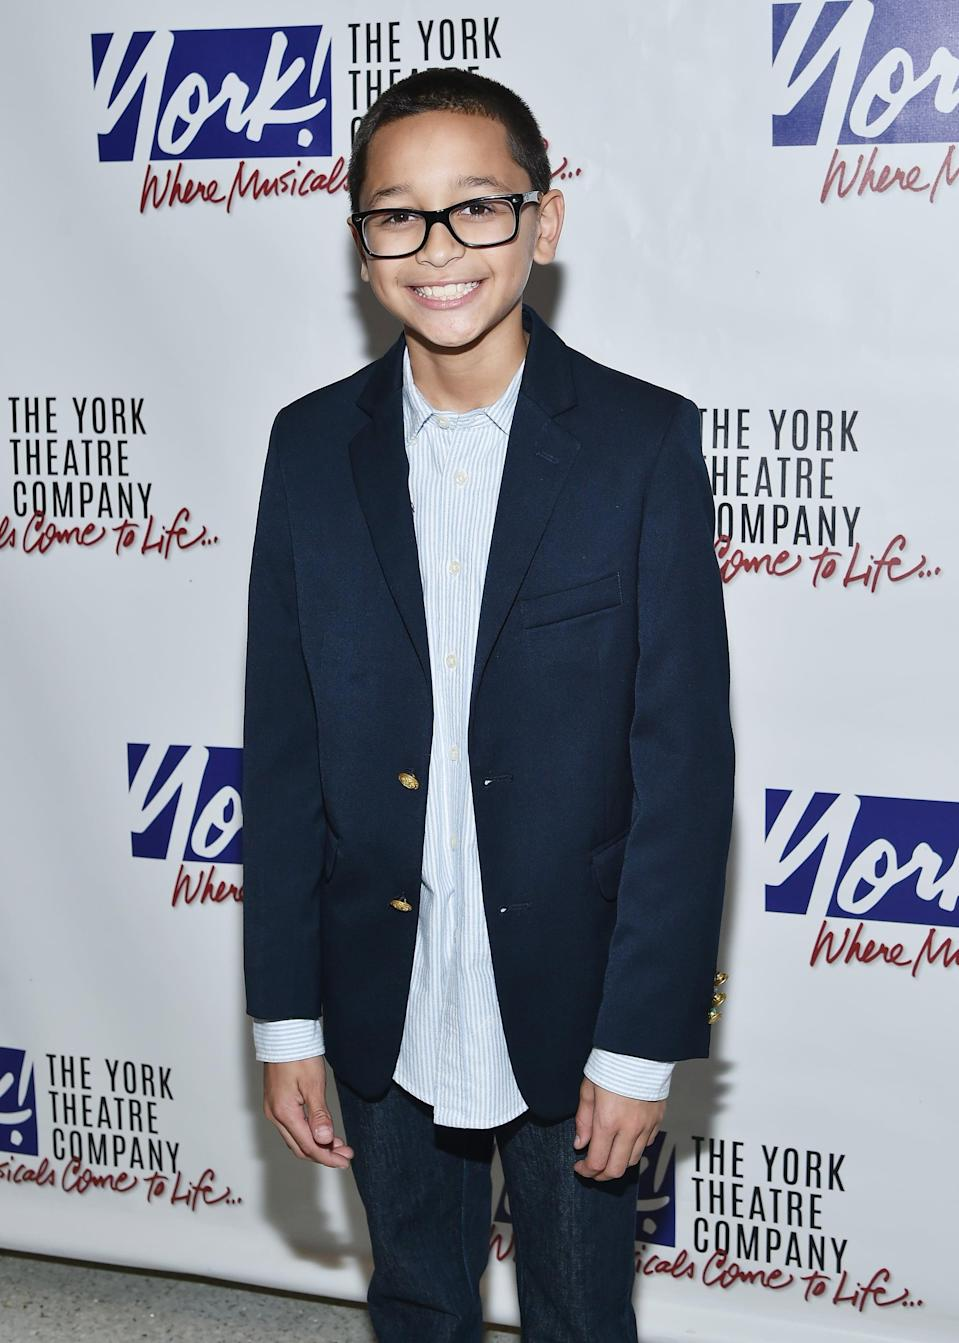 <p>Diaz portrays Sonny, Usnavi's younger, smart-mouthed cousin who works with him in the bodega. In the play, he's known as the comedian of the community, but he's also passionate about social justice.</p>